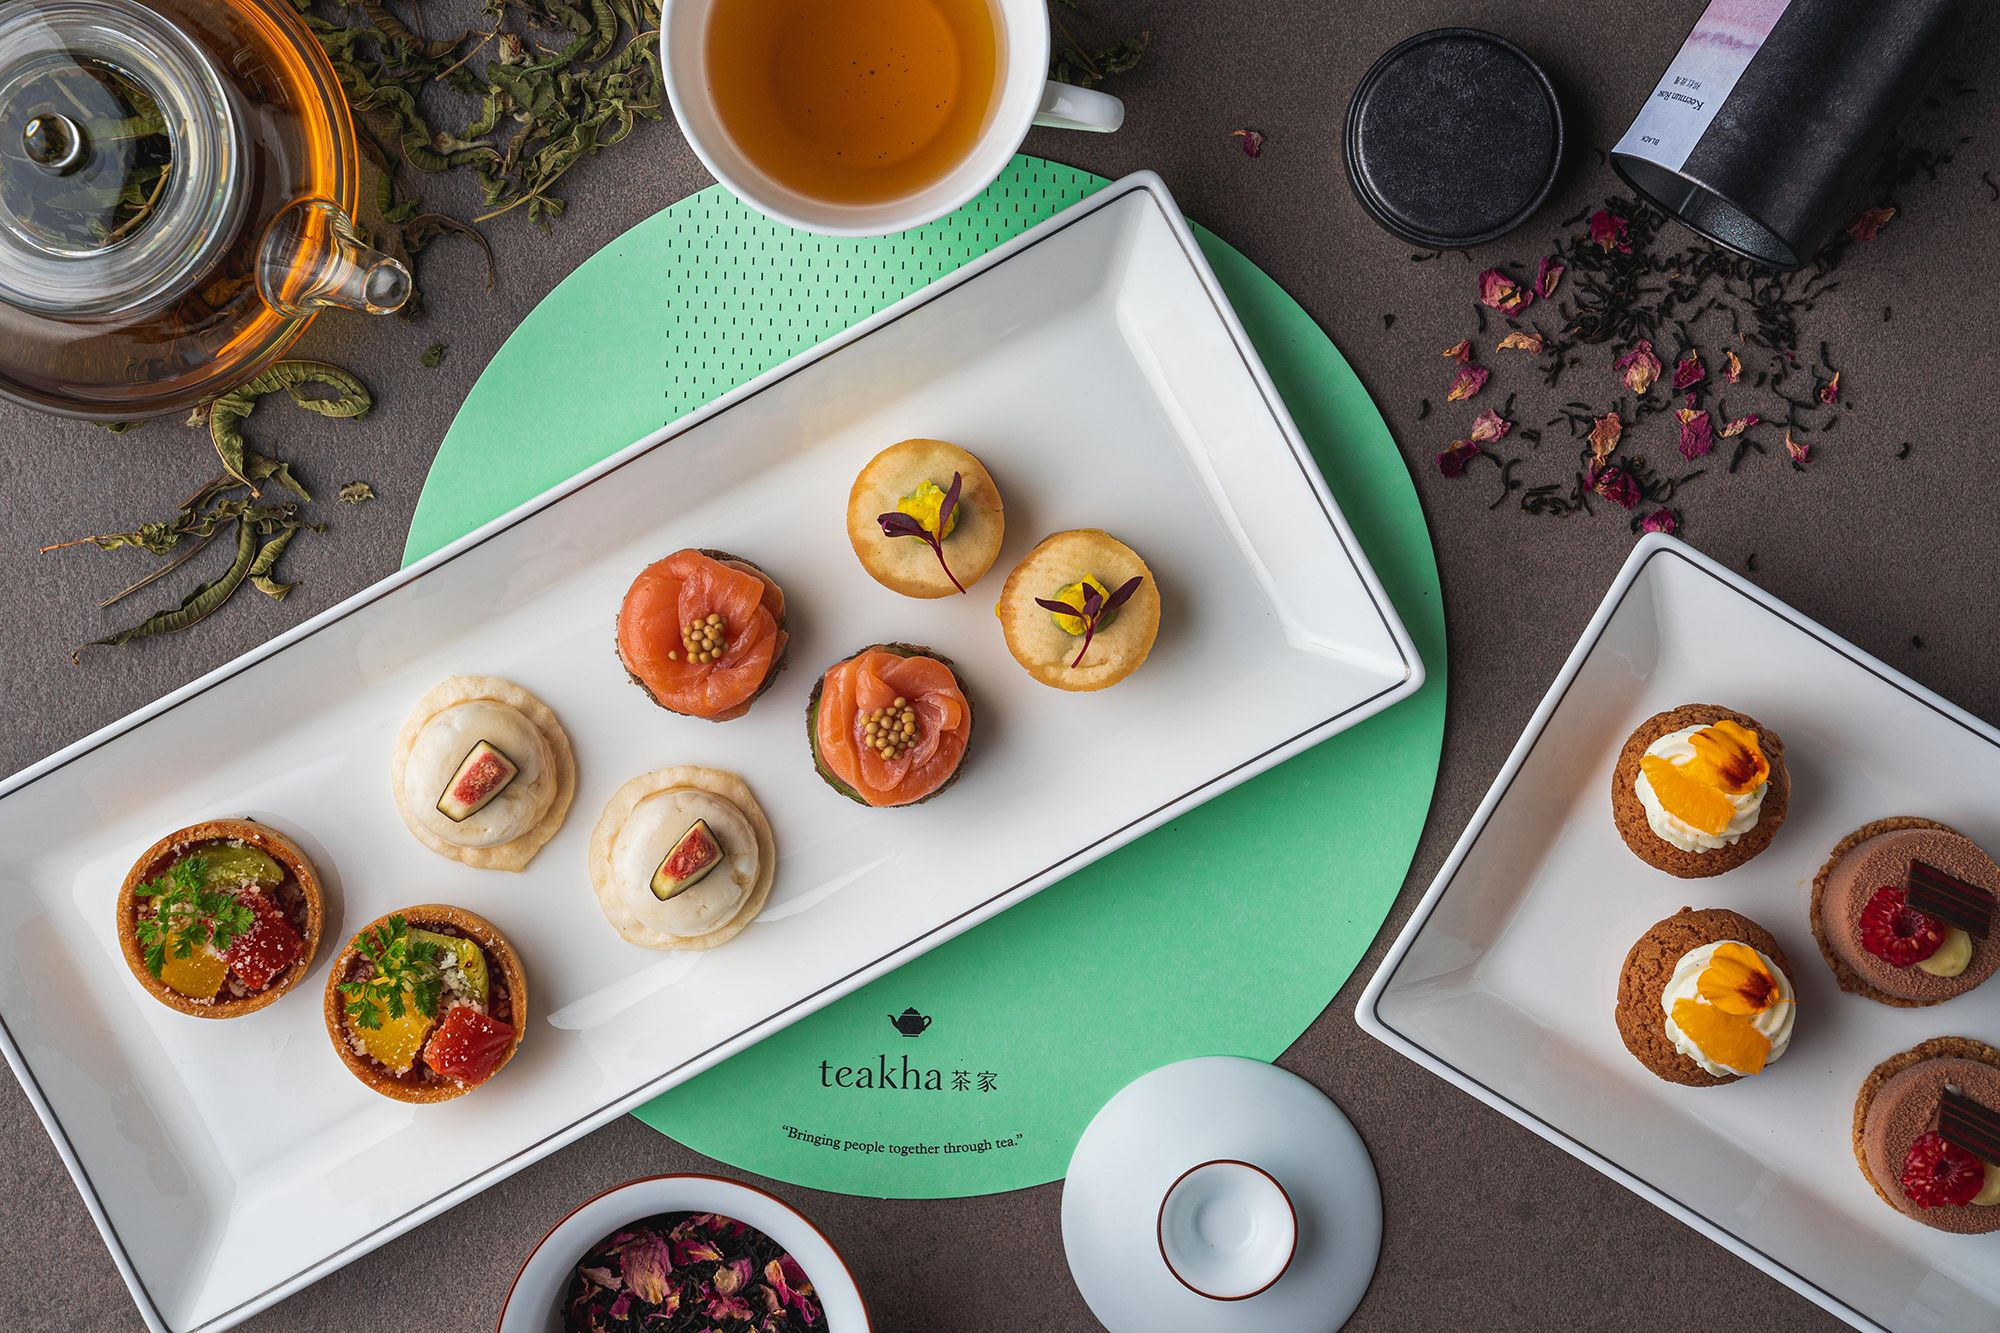 Cafe Gray Deluxe Debuts New Afternoon Tea With Teakha